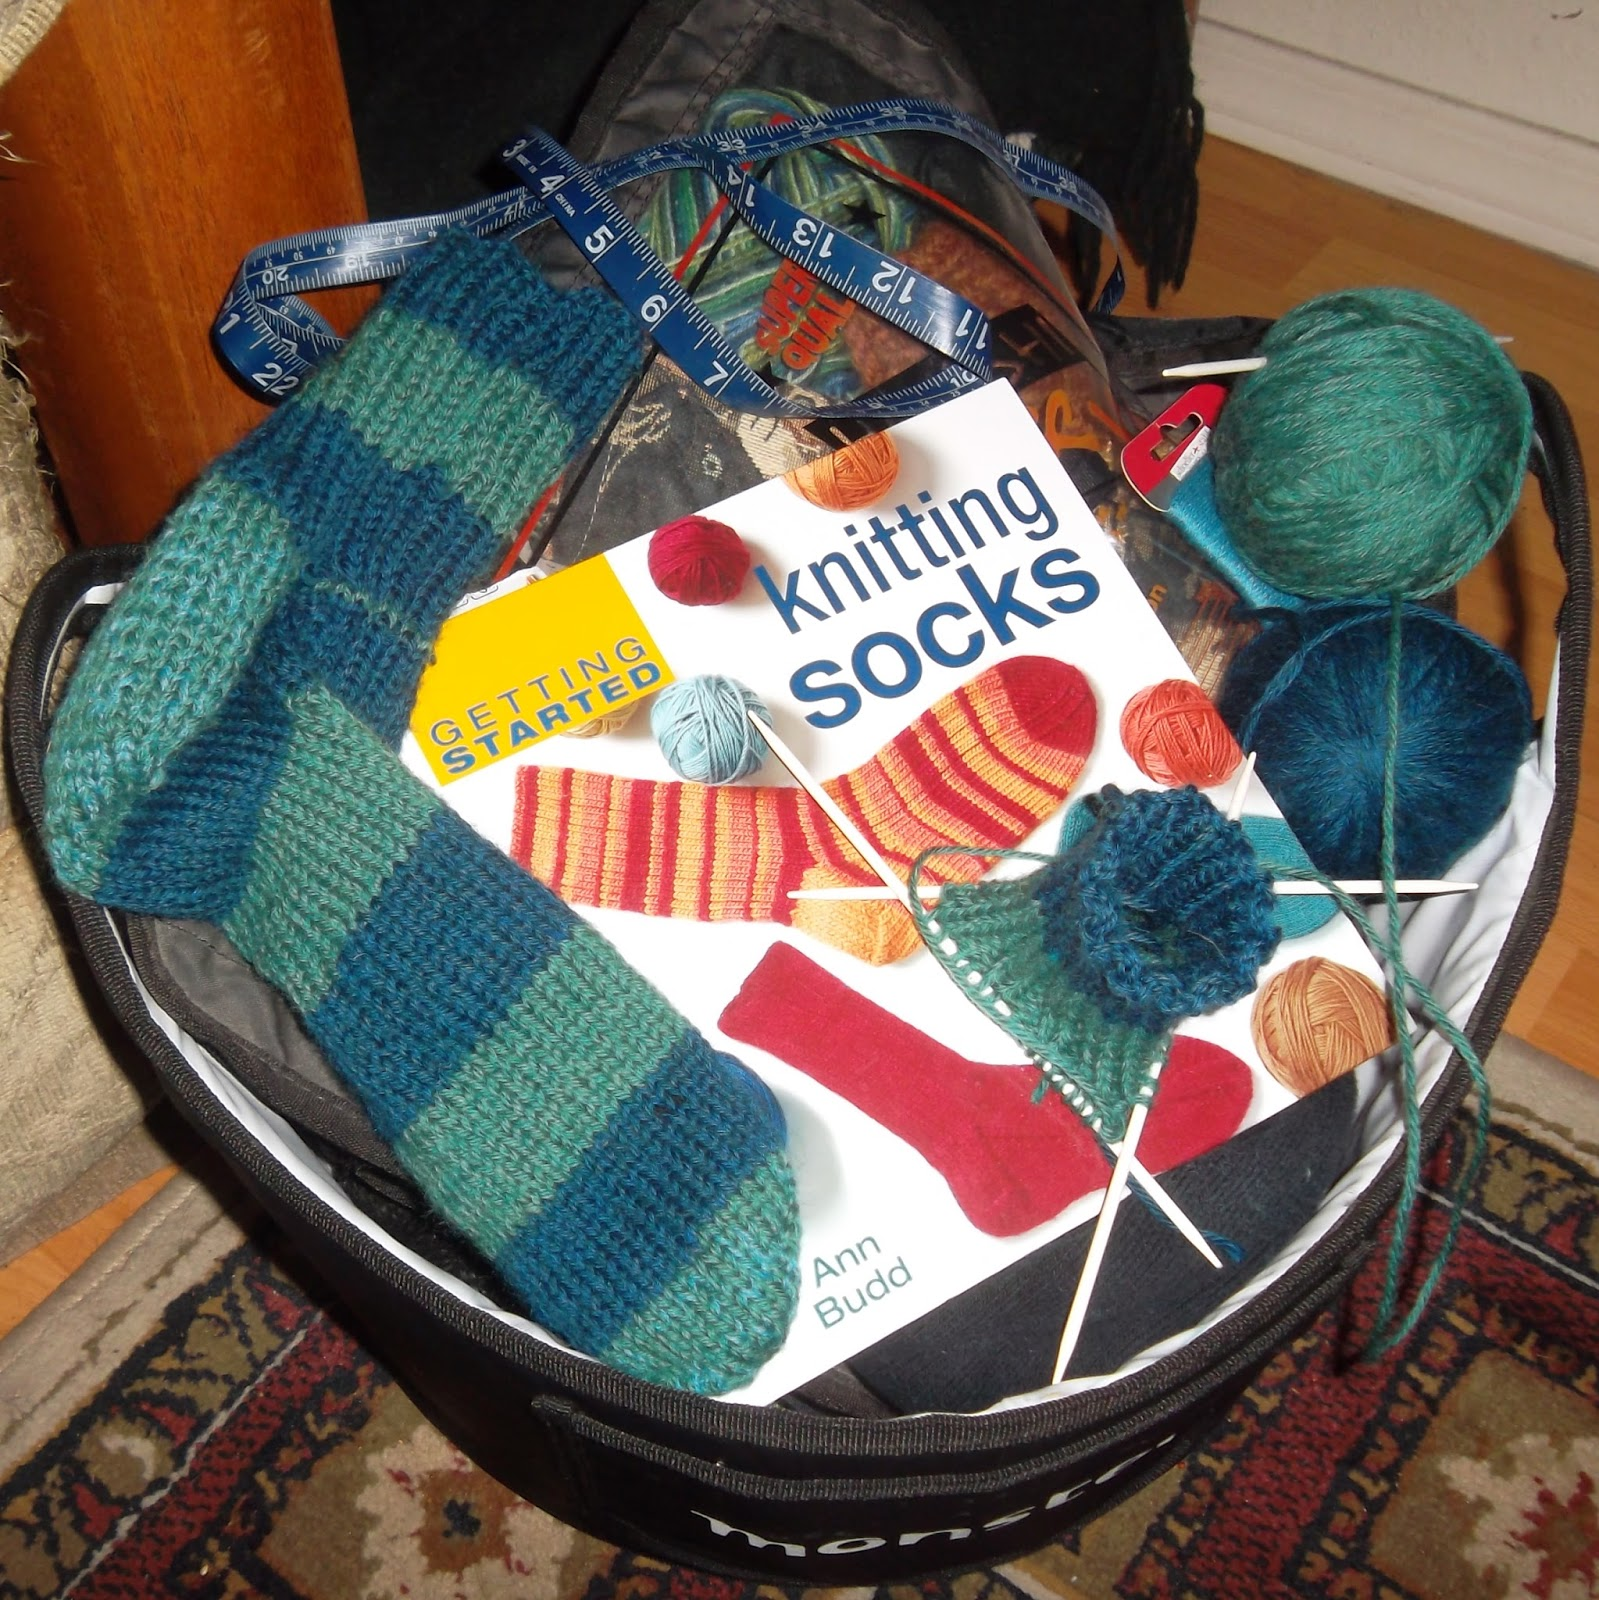 Black work basket containing dark-and-light teal-striped sock, the leg of a second sock on double-pointed knitting needles with balls of dark and light teal yarn. With them is a book by Ann Budd, Getting Started Knitting Socks.